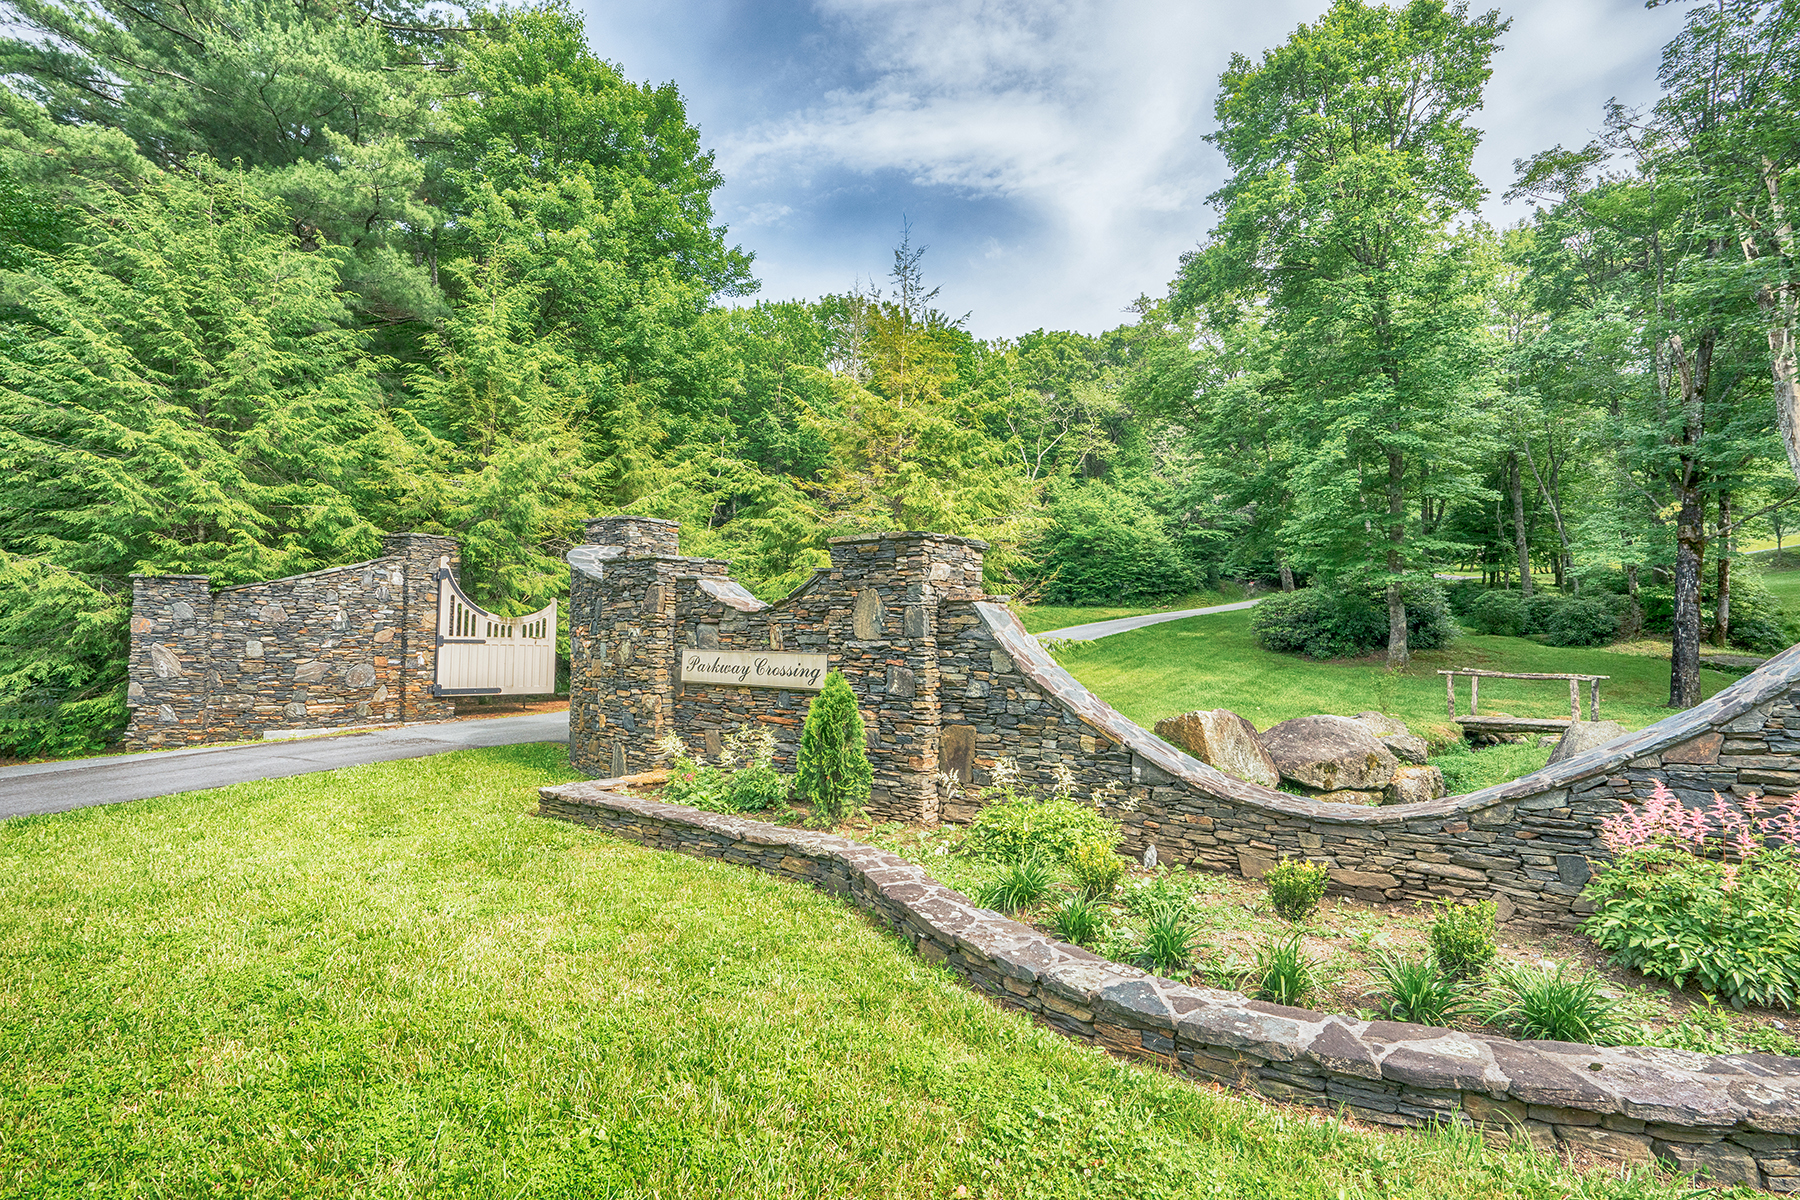 Land for Sale at BLOWING ROCK - PARKWAY CROSSING Lot 6 Cielo Rd, Blowing Rock, North Carolina, 28605 United States